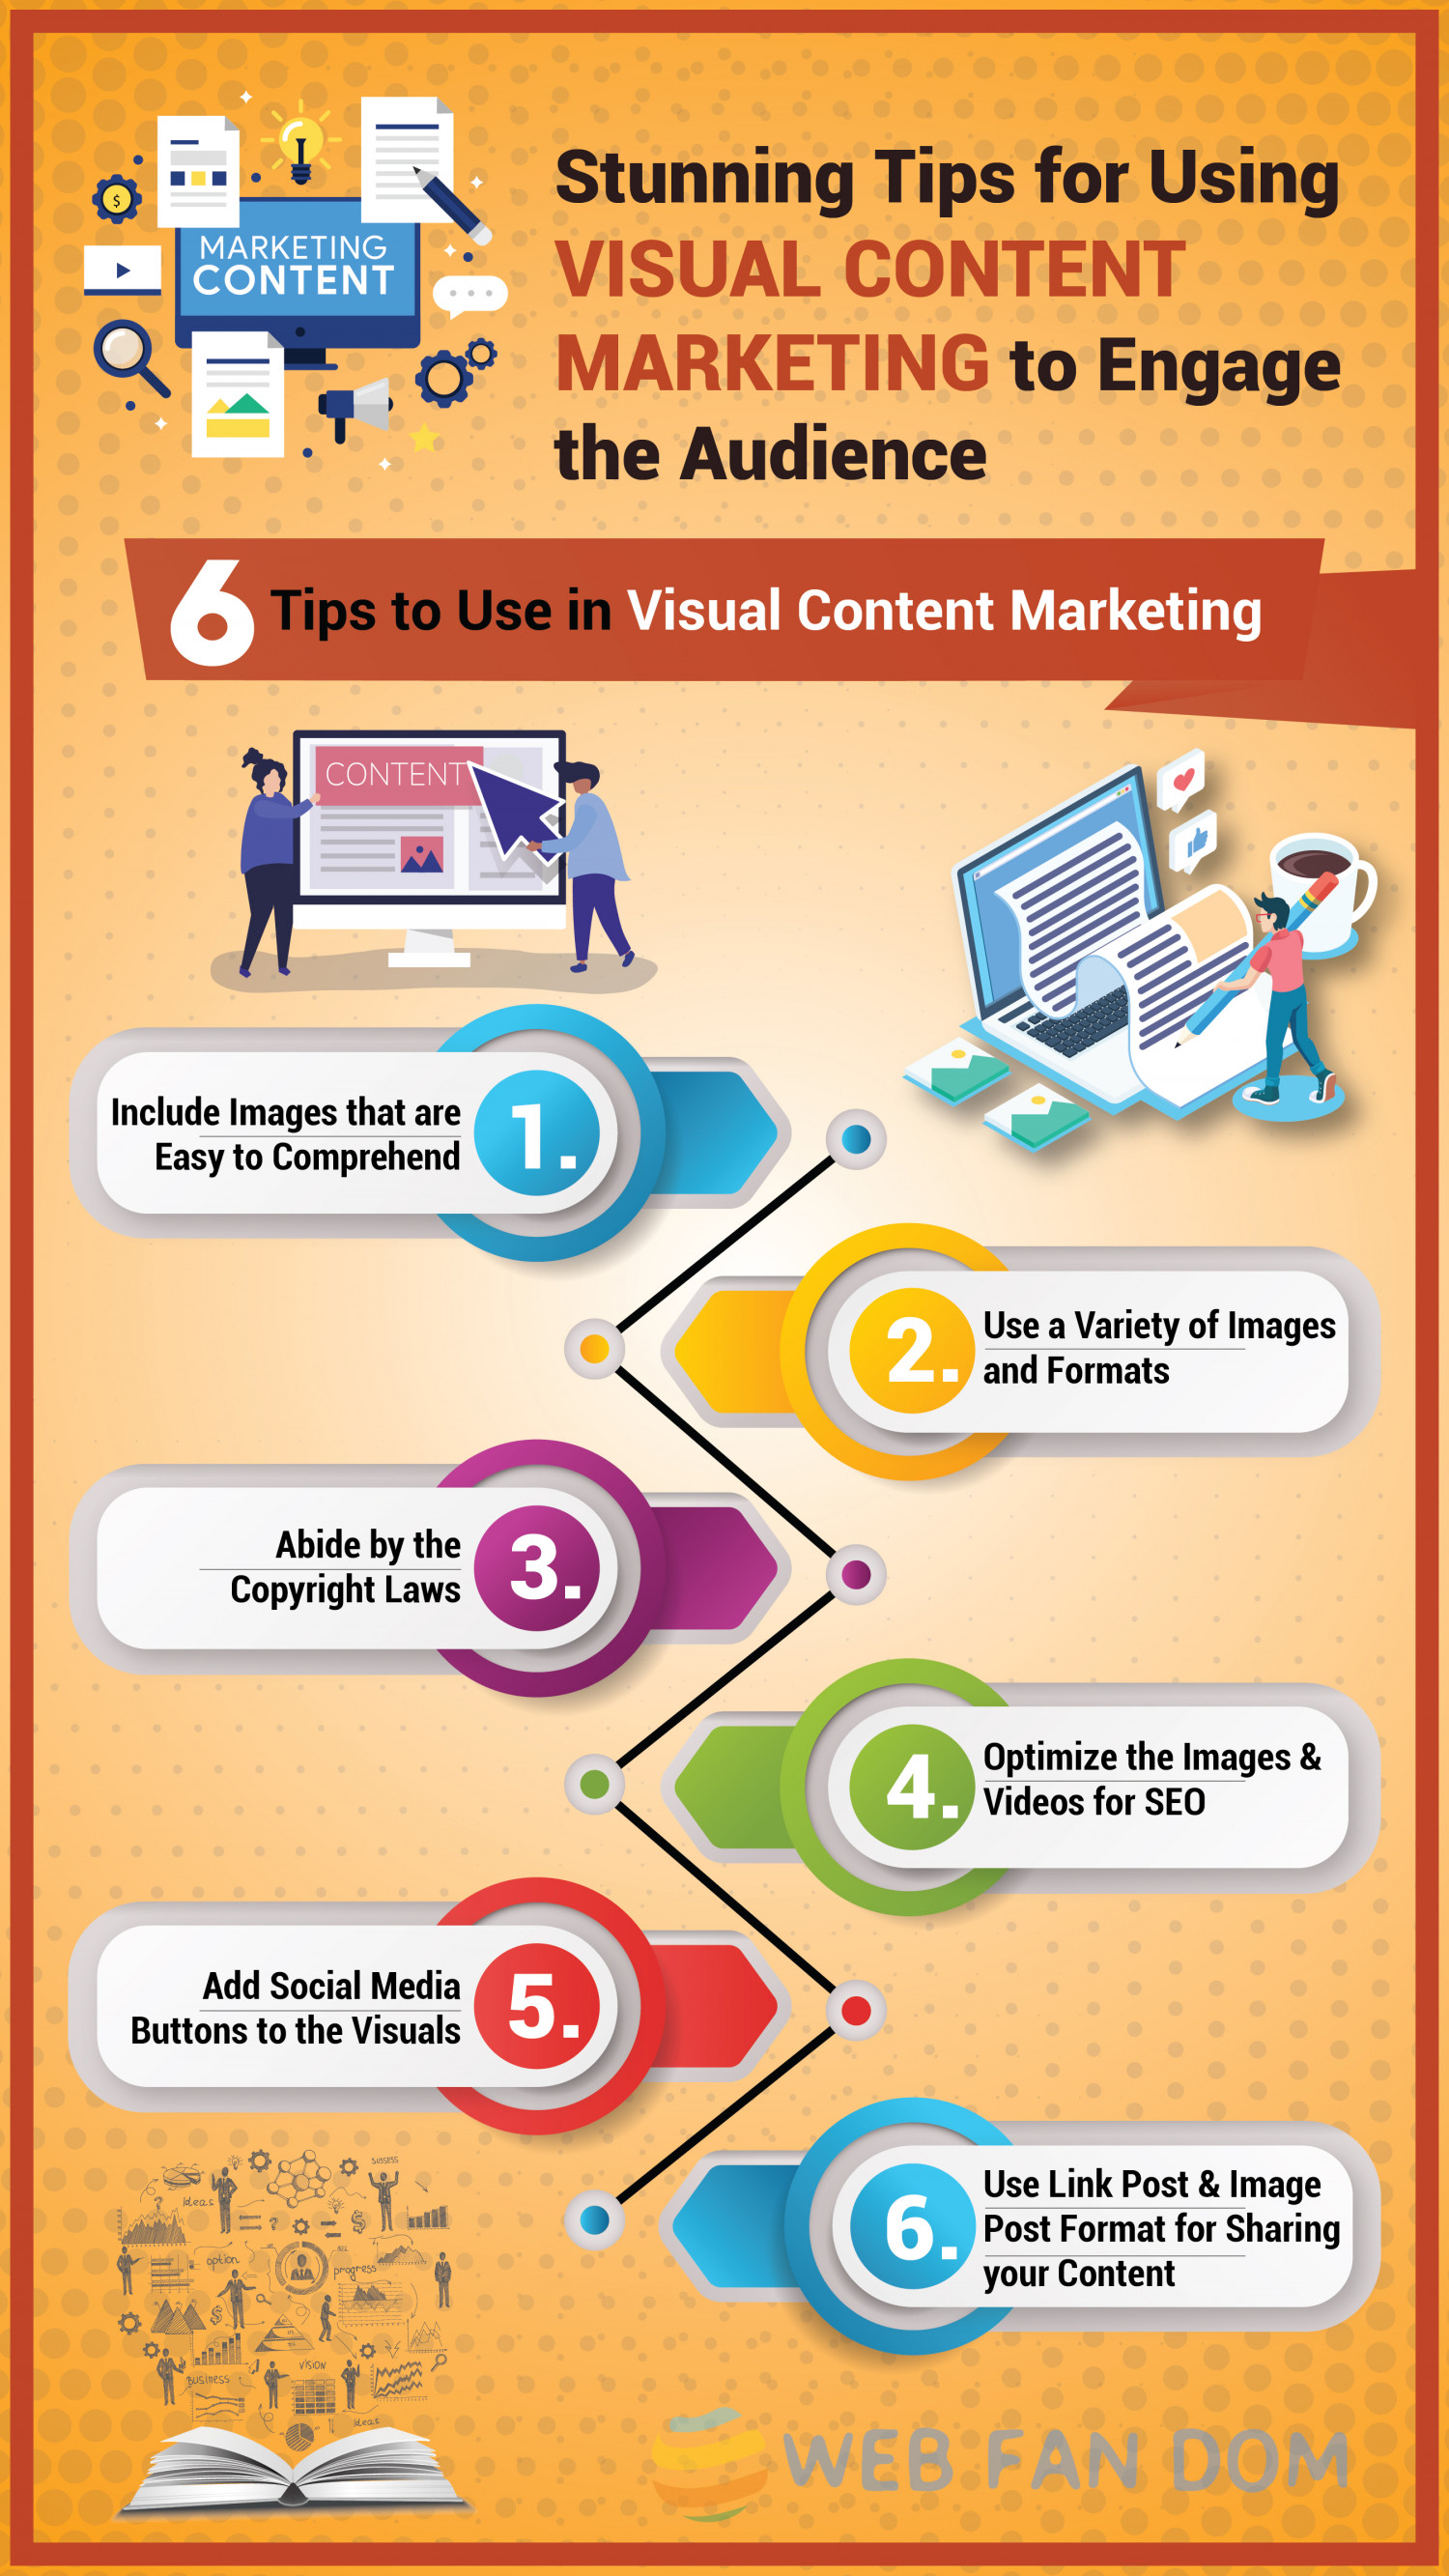 visual content marketing in 2019